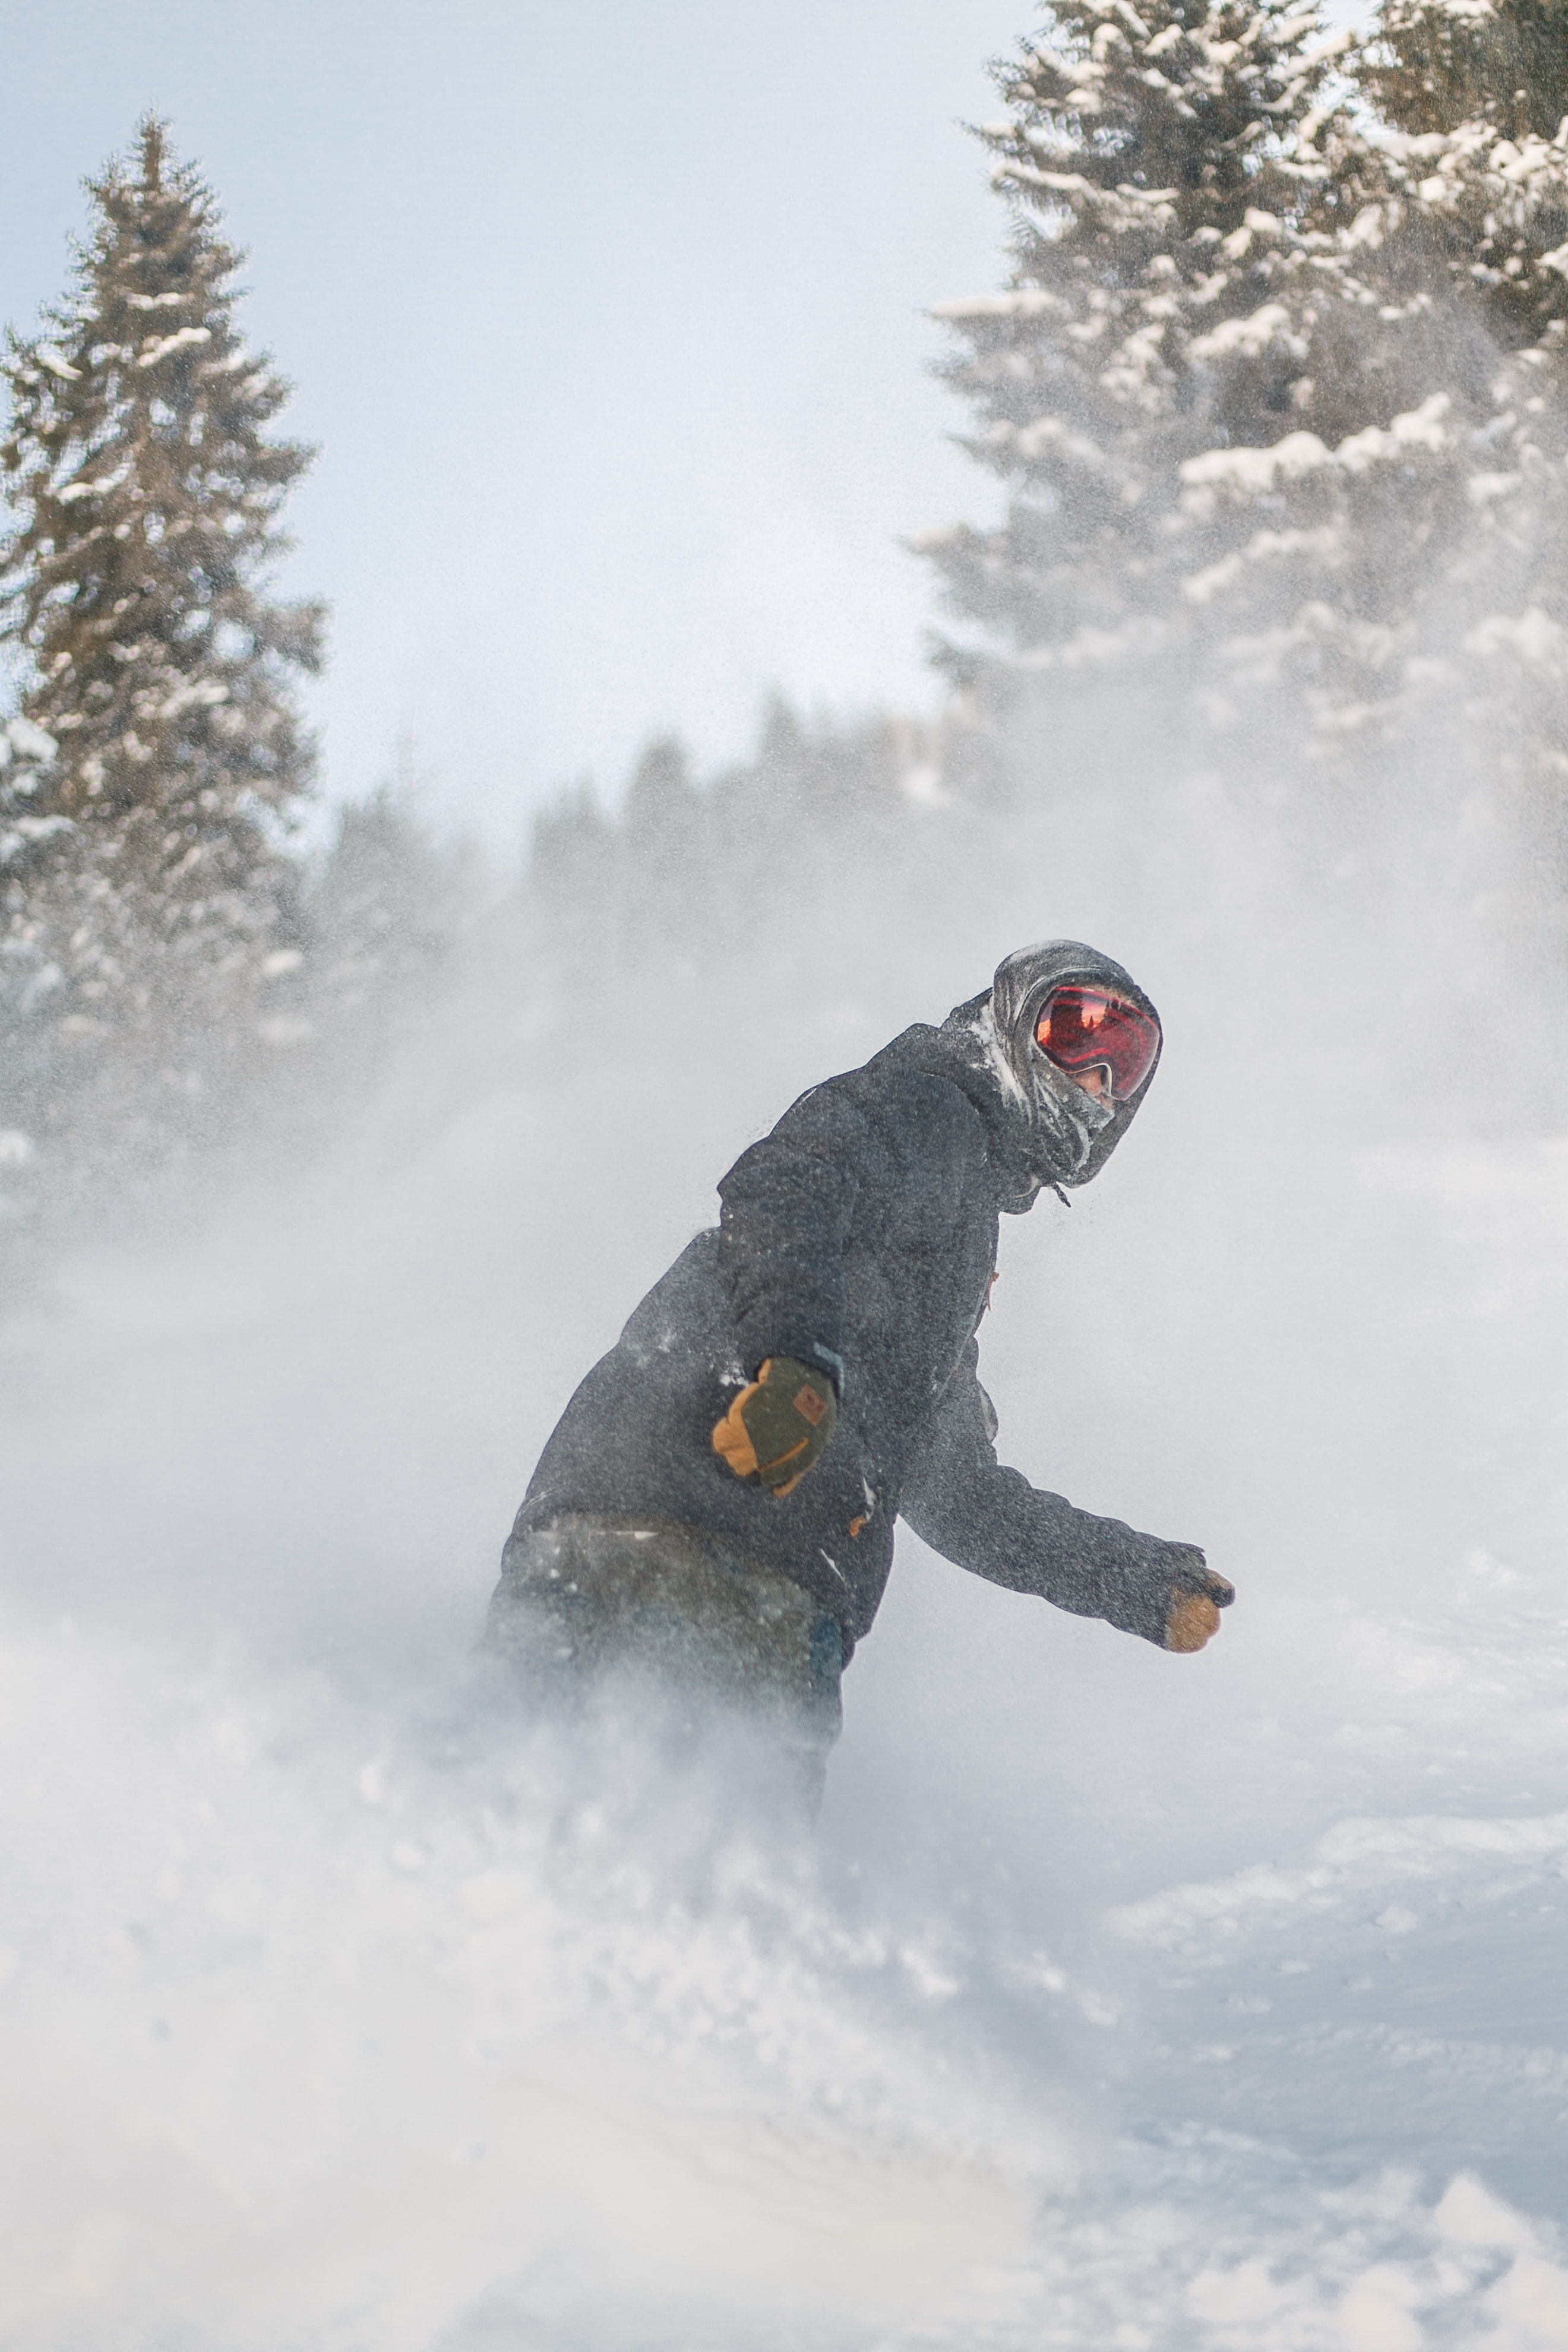 Person In Grey Jacket And Red Snow Goggles Riding On Snowboard Free Stock Photo